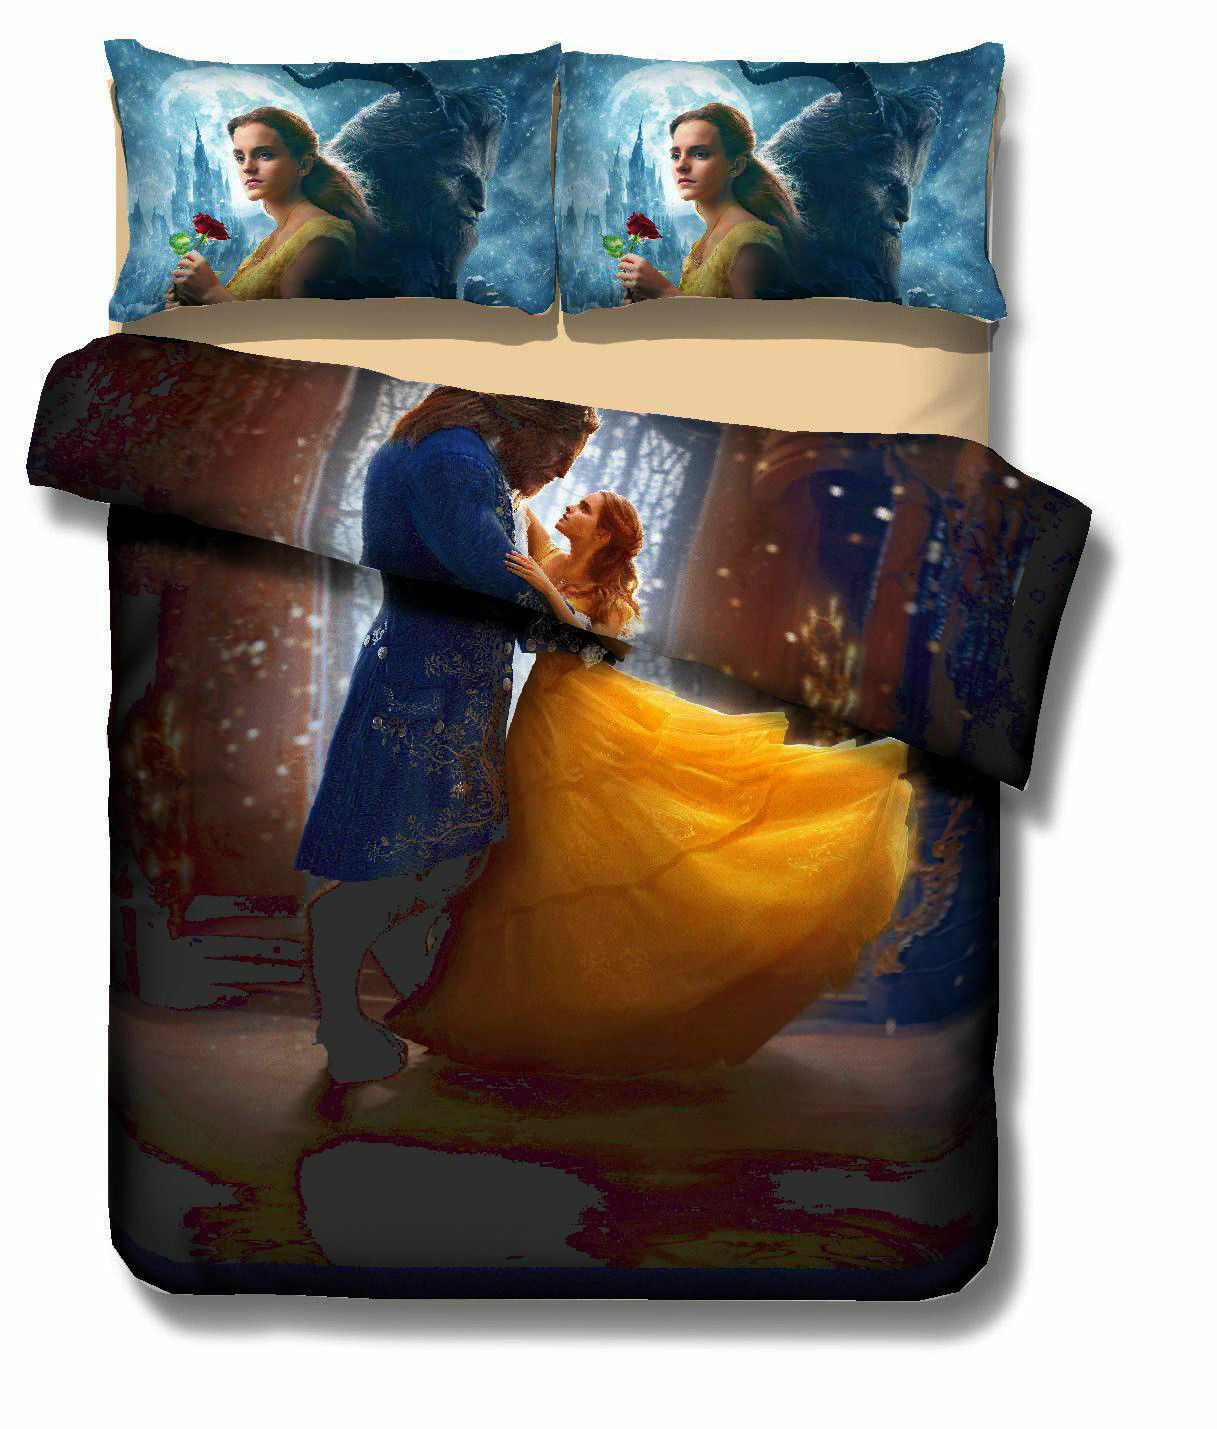 Beauty and the Beast Bedding Set Fairy Tales Duvet Cover Quilt Cover Pillowcase